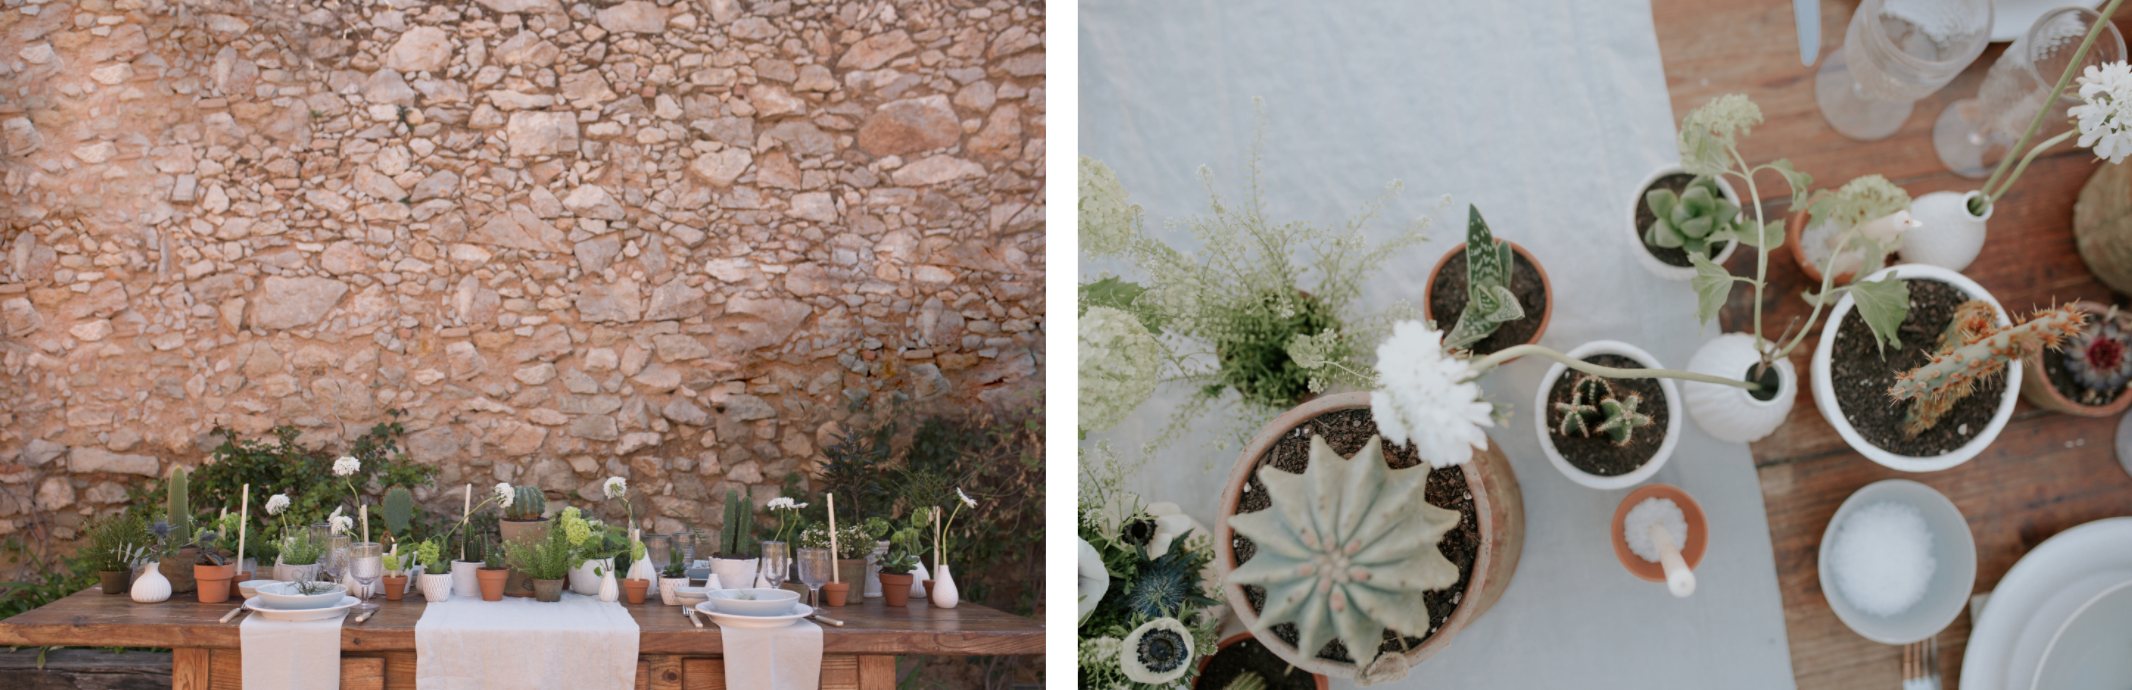 Mediterranean Wedding in a XVI Century Masia Destination Wedding Planner The Creatives Loft Wedding Studio and Vasver Photographers